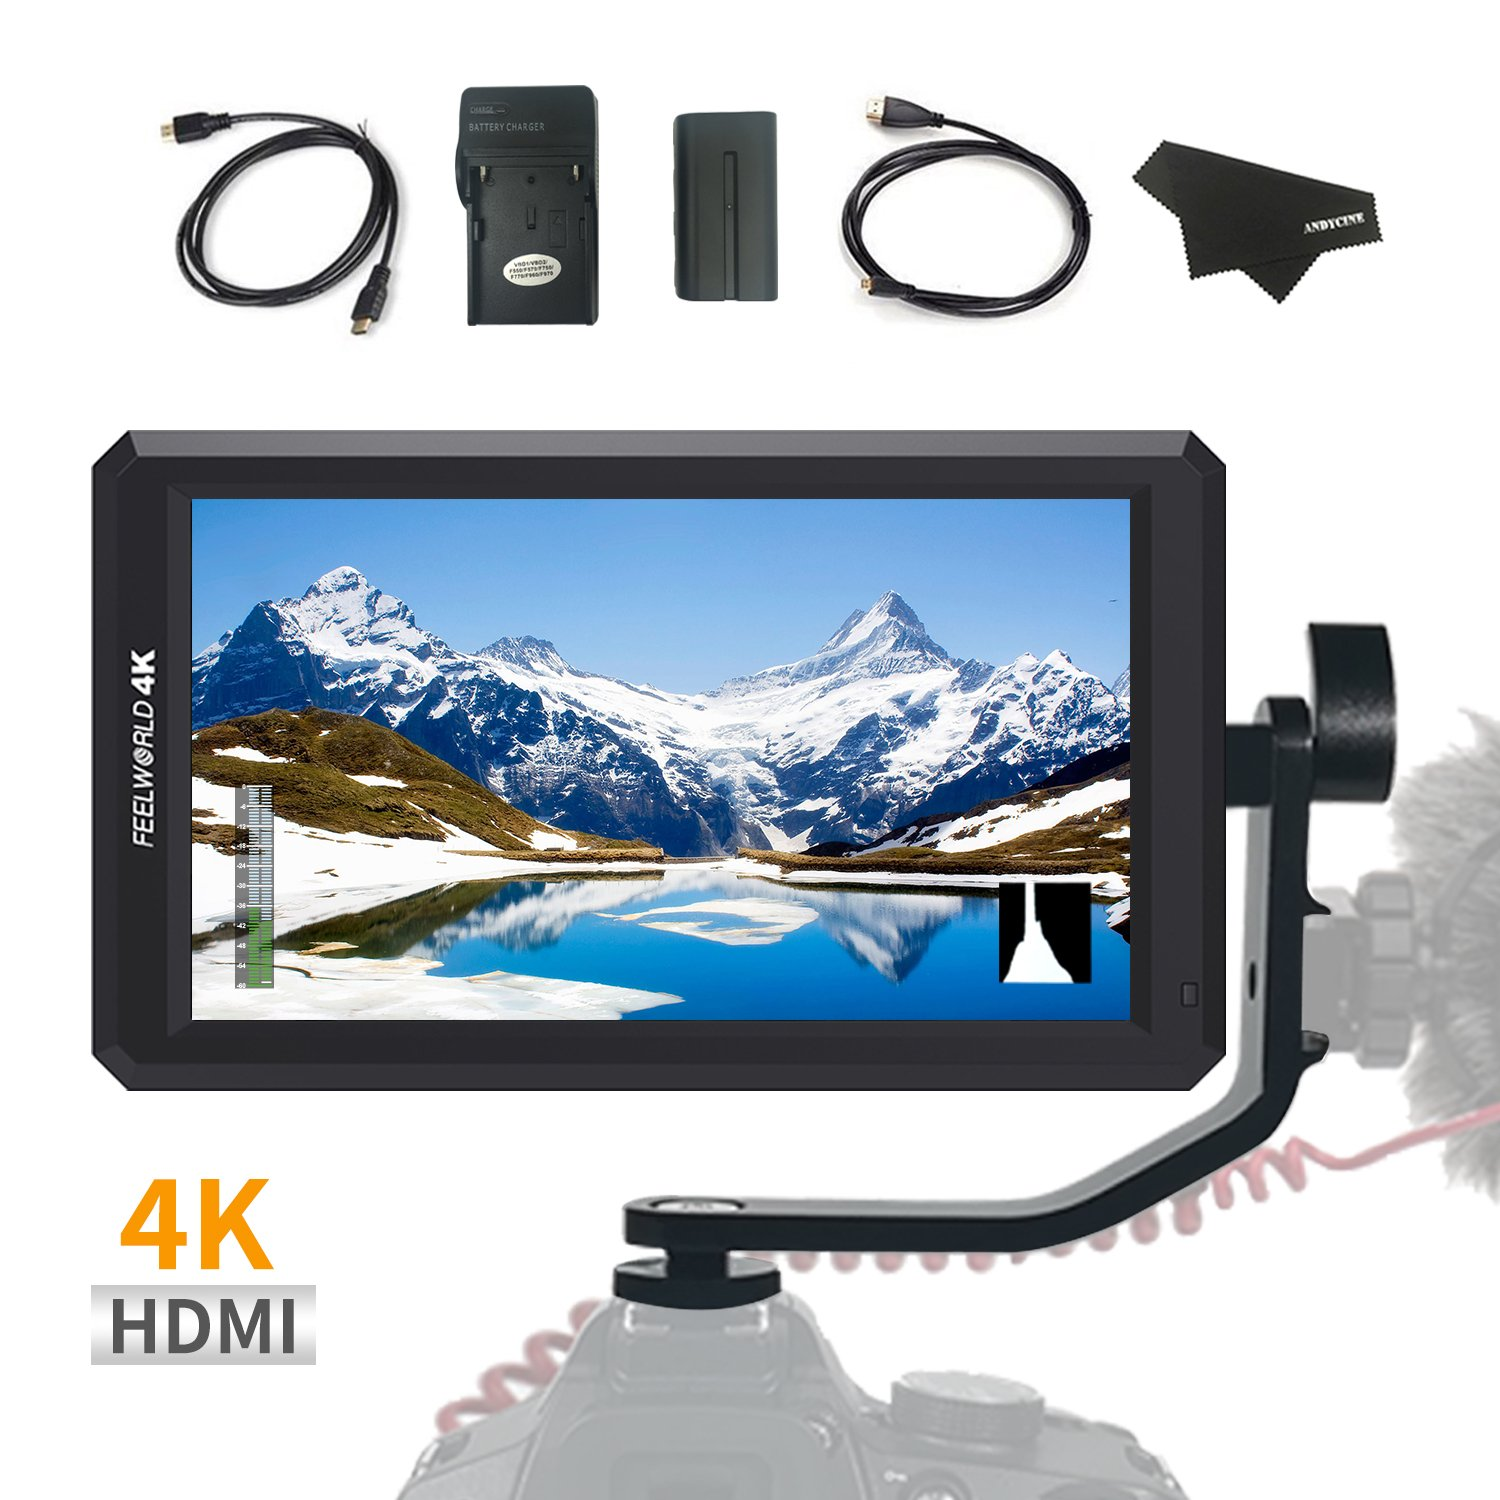 FEELWORLD F6 5.7Inch FHD IPS On Camera 4K HDMI Monitor with Swivel Arm and 8V DC Power Output F550 Battery Included Kit(Upgraded firmware) by FEELWORLD